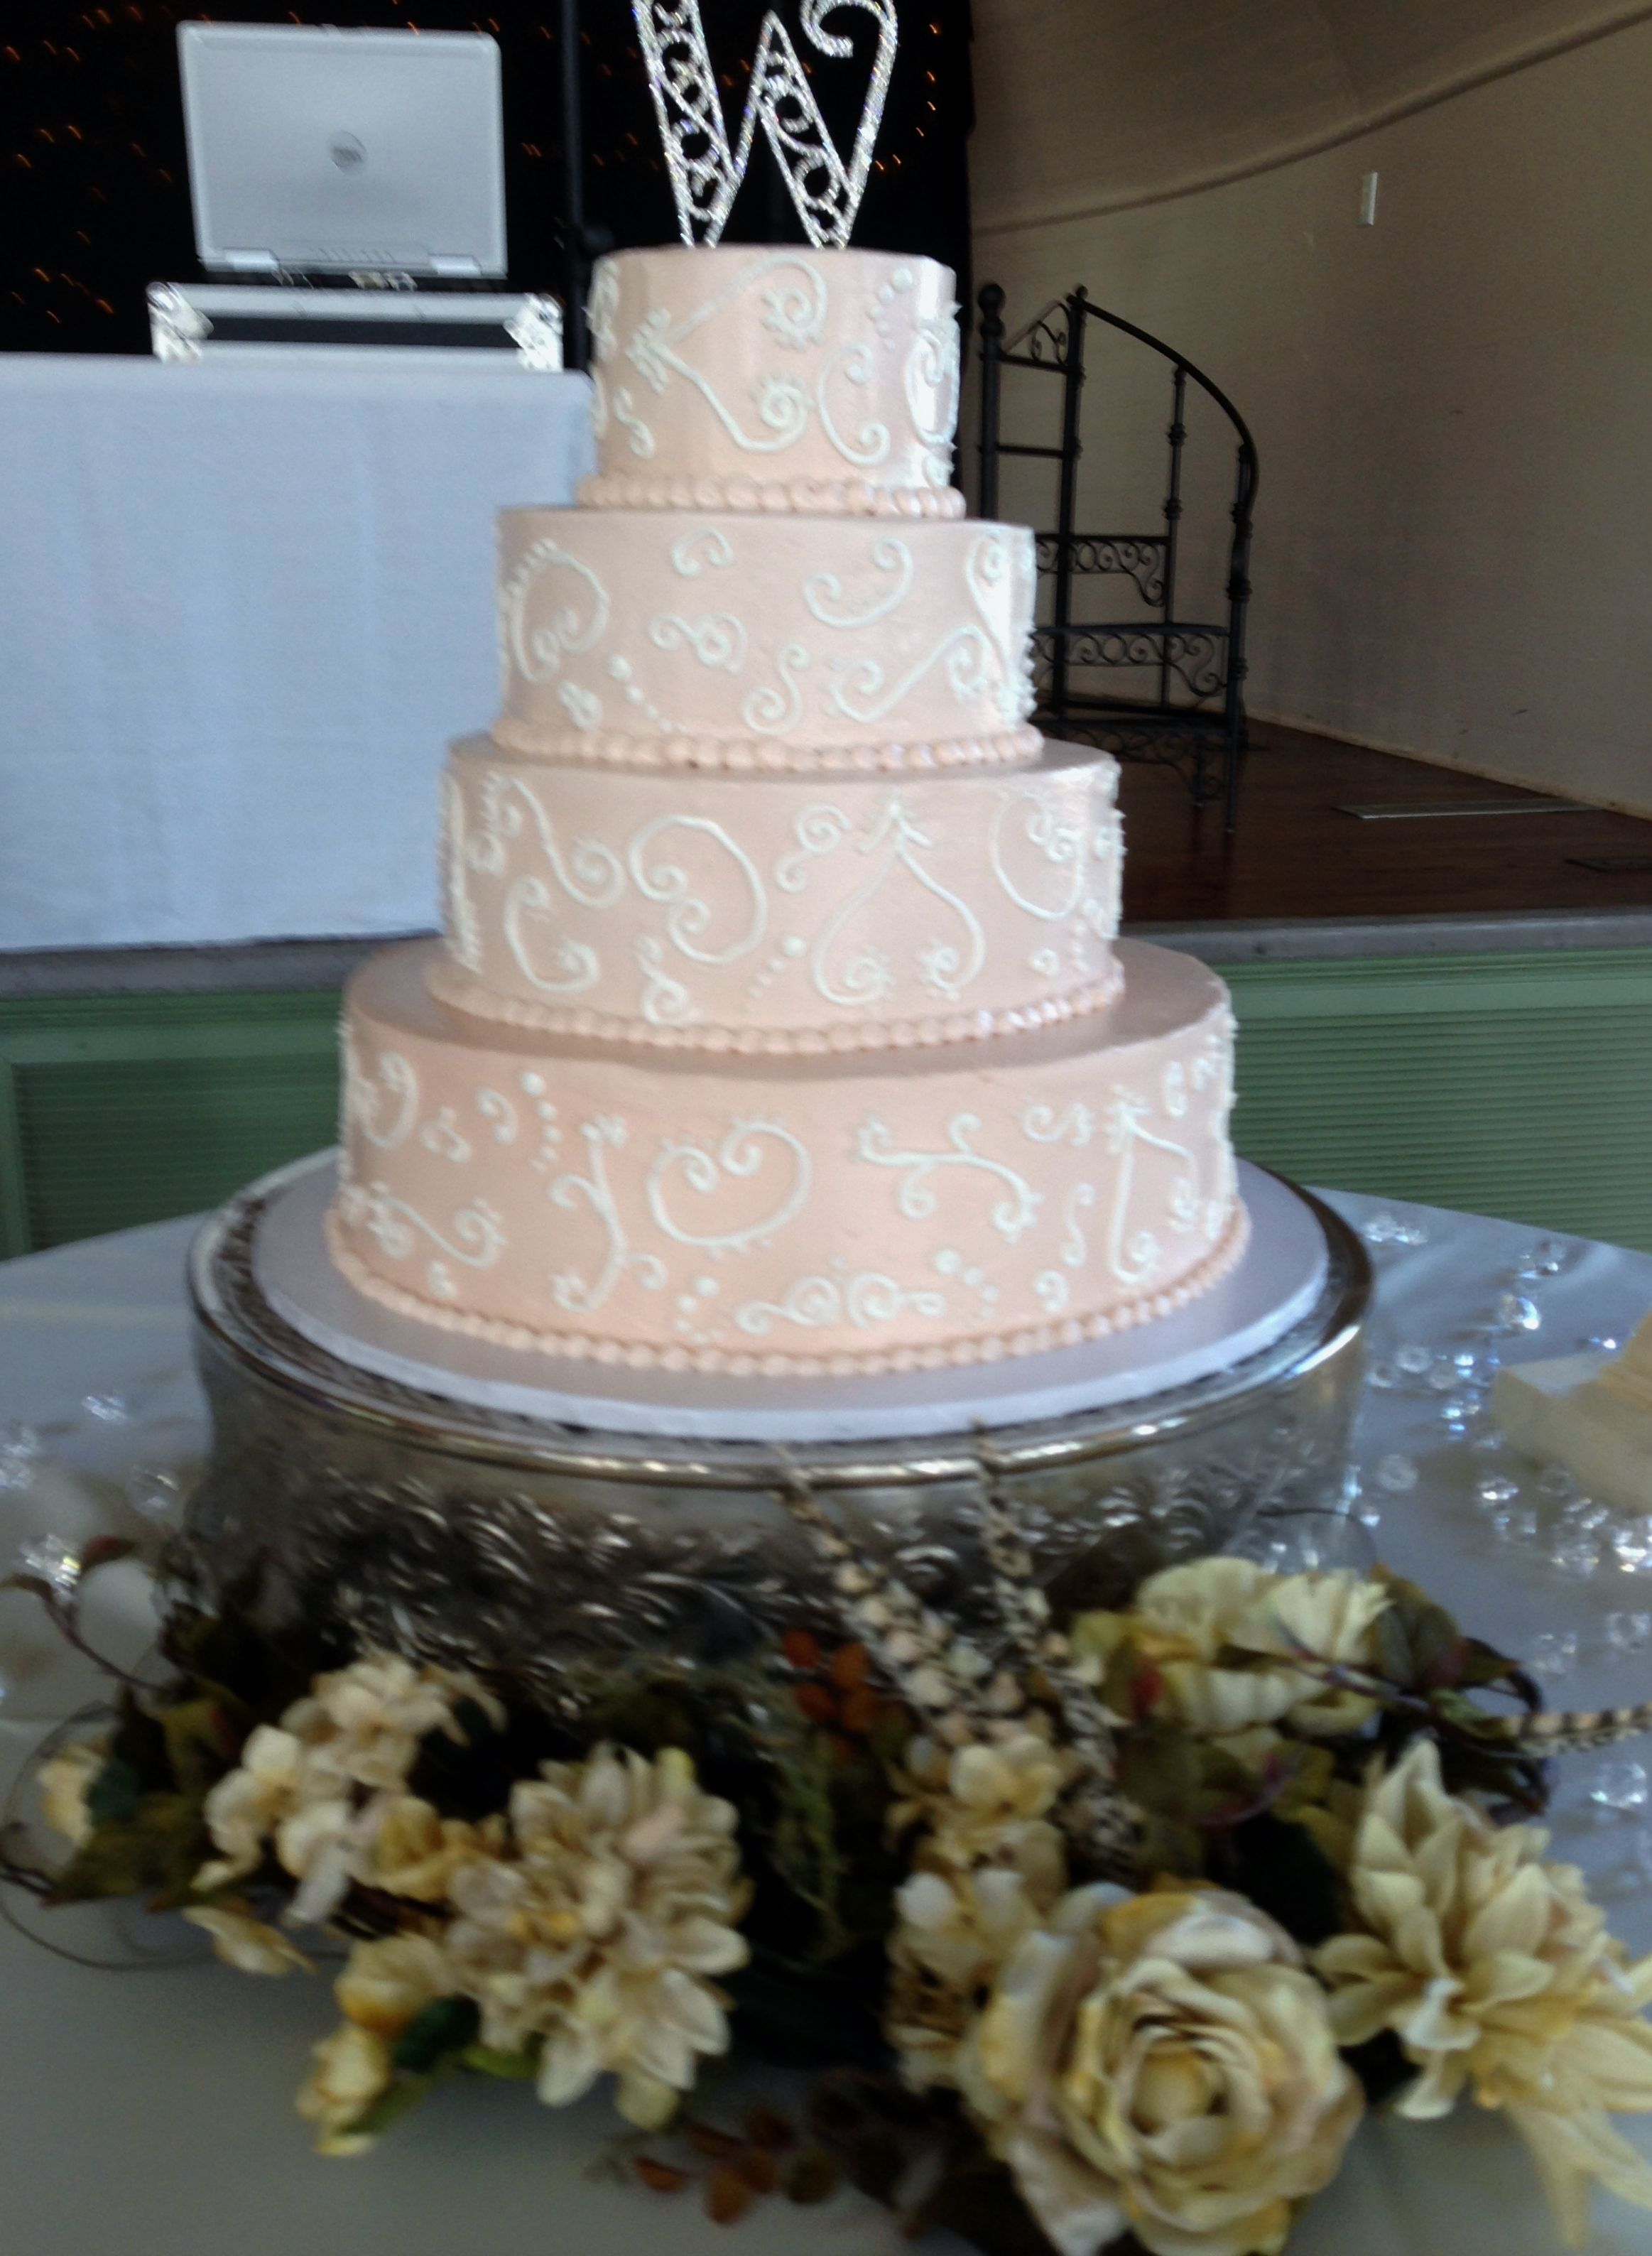 This is a butter cream wedding cake for 200 guests